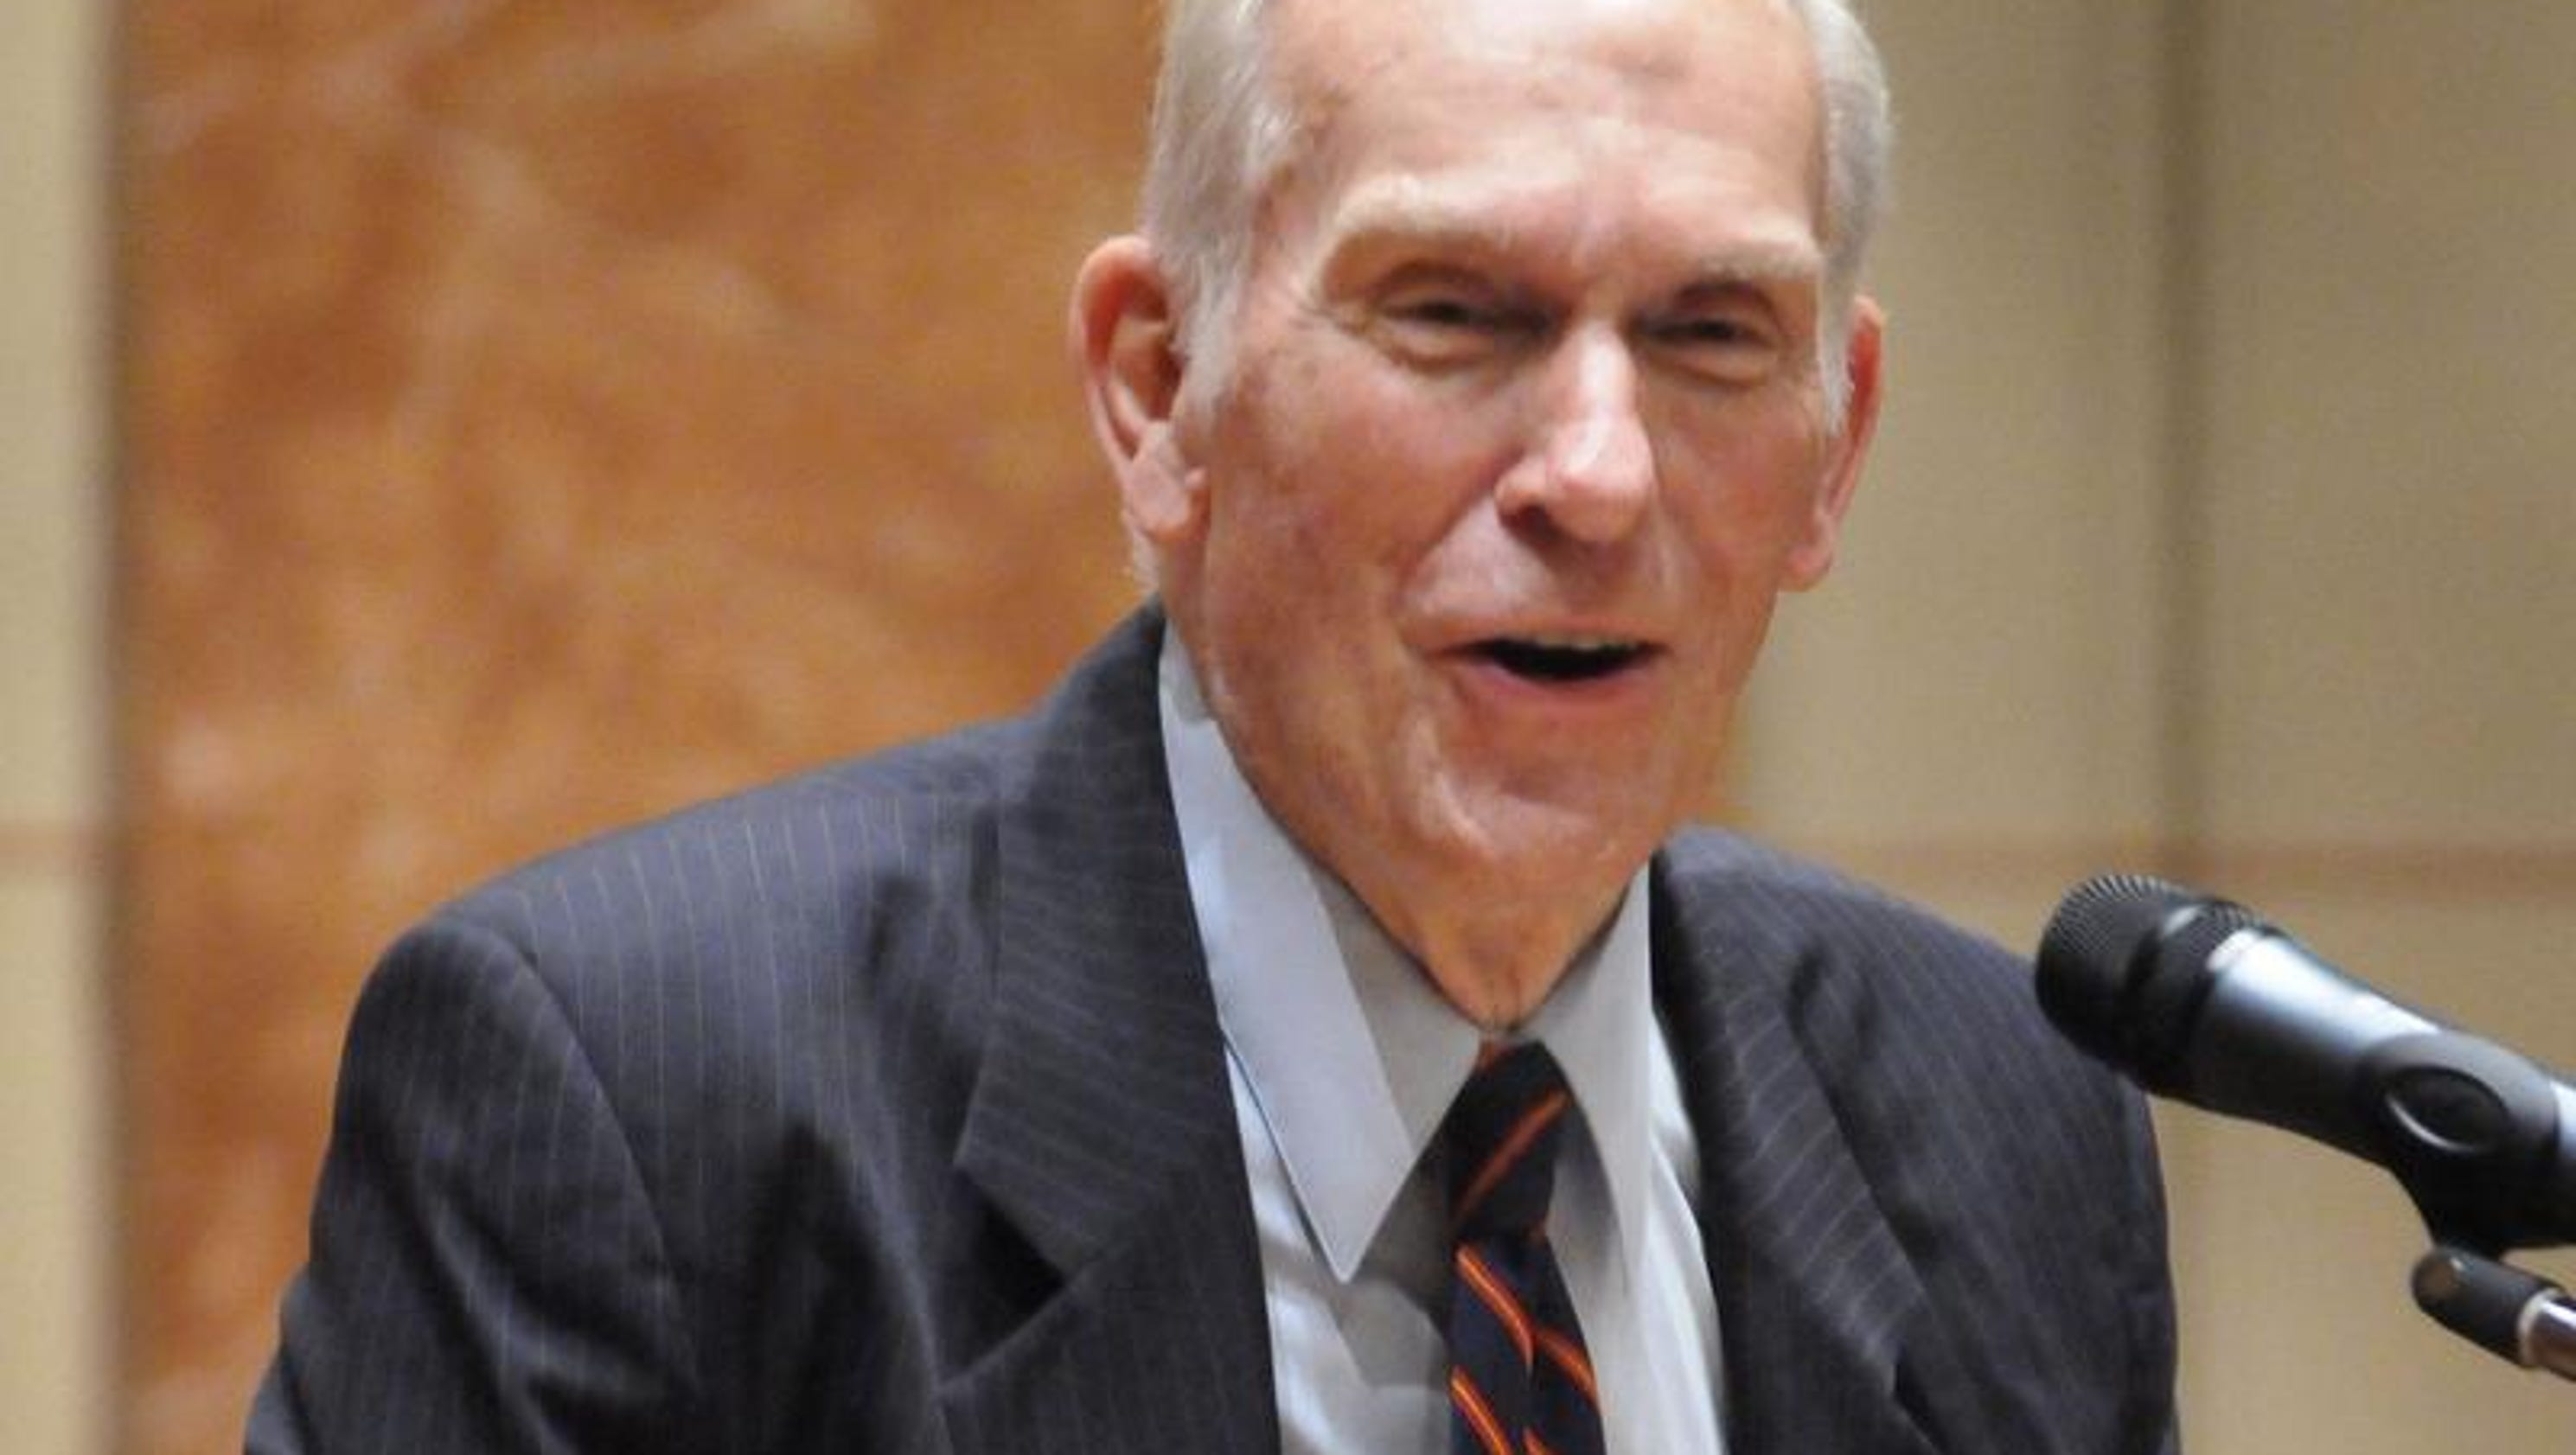 Former Indiana Congressman Andrew Jacobs, 81, dies